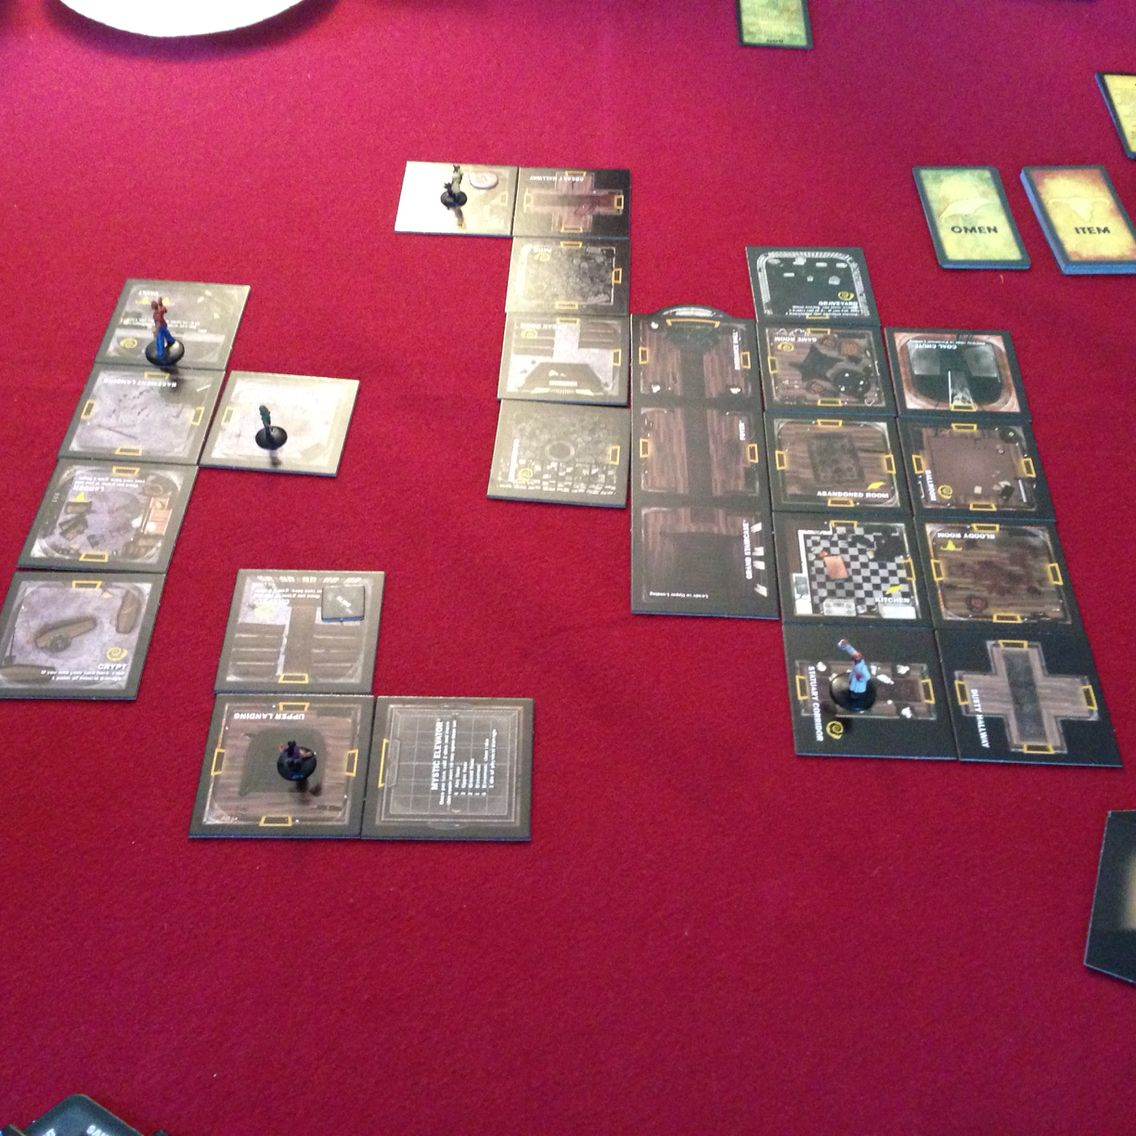 Betrayal at the house on the hill June 2015